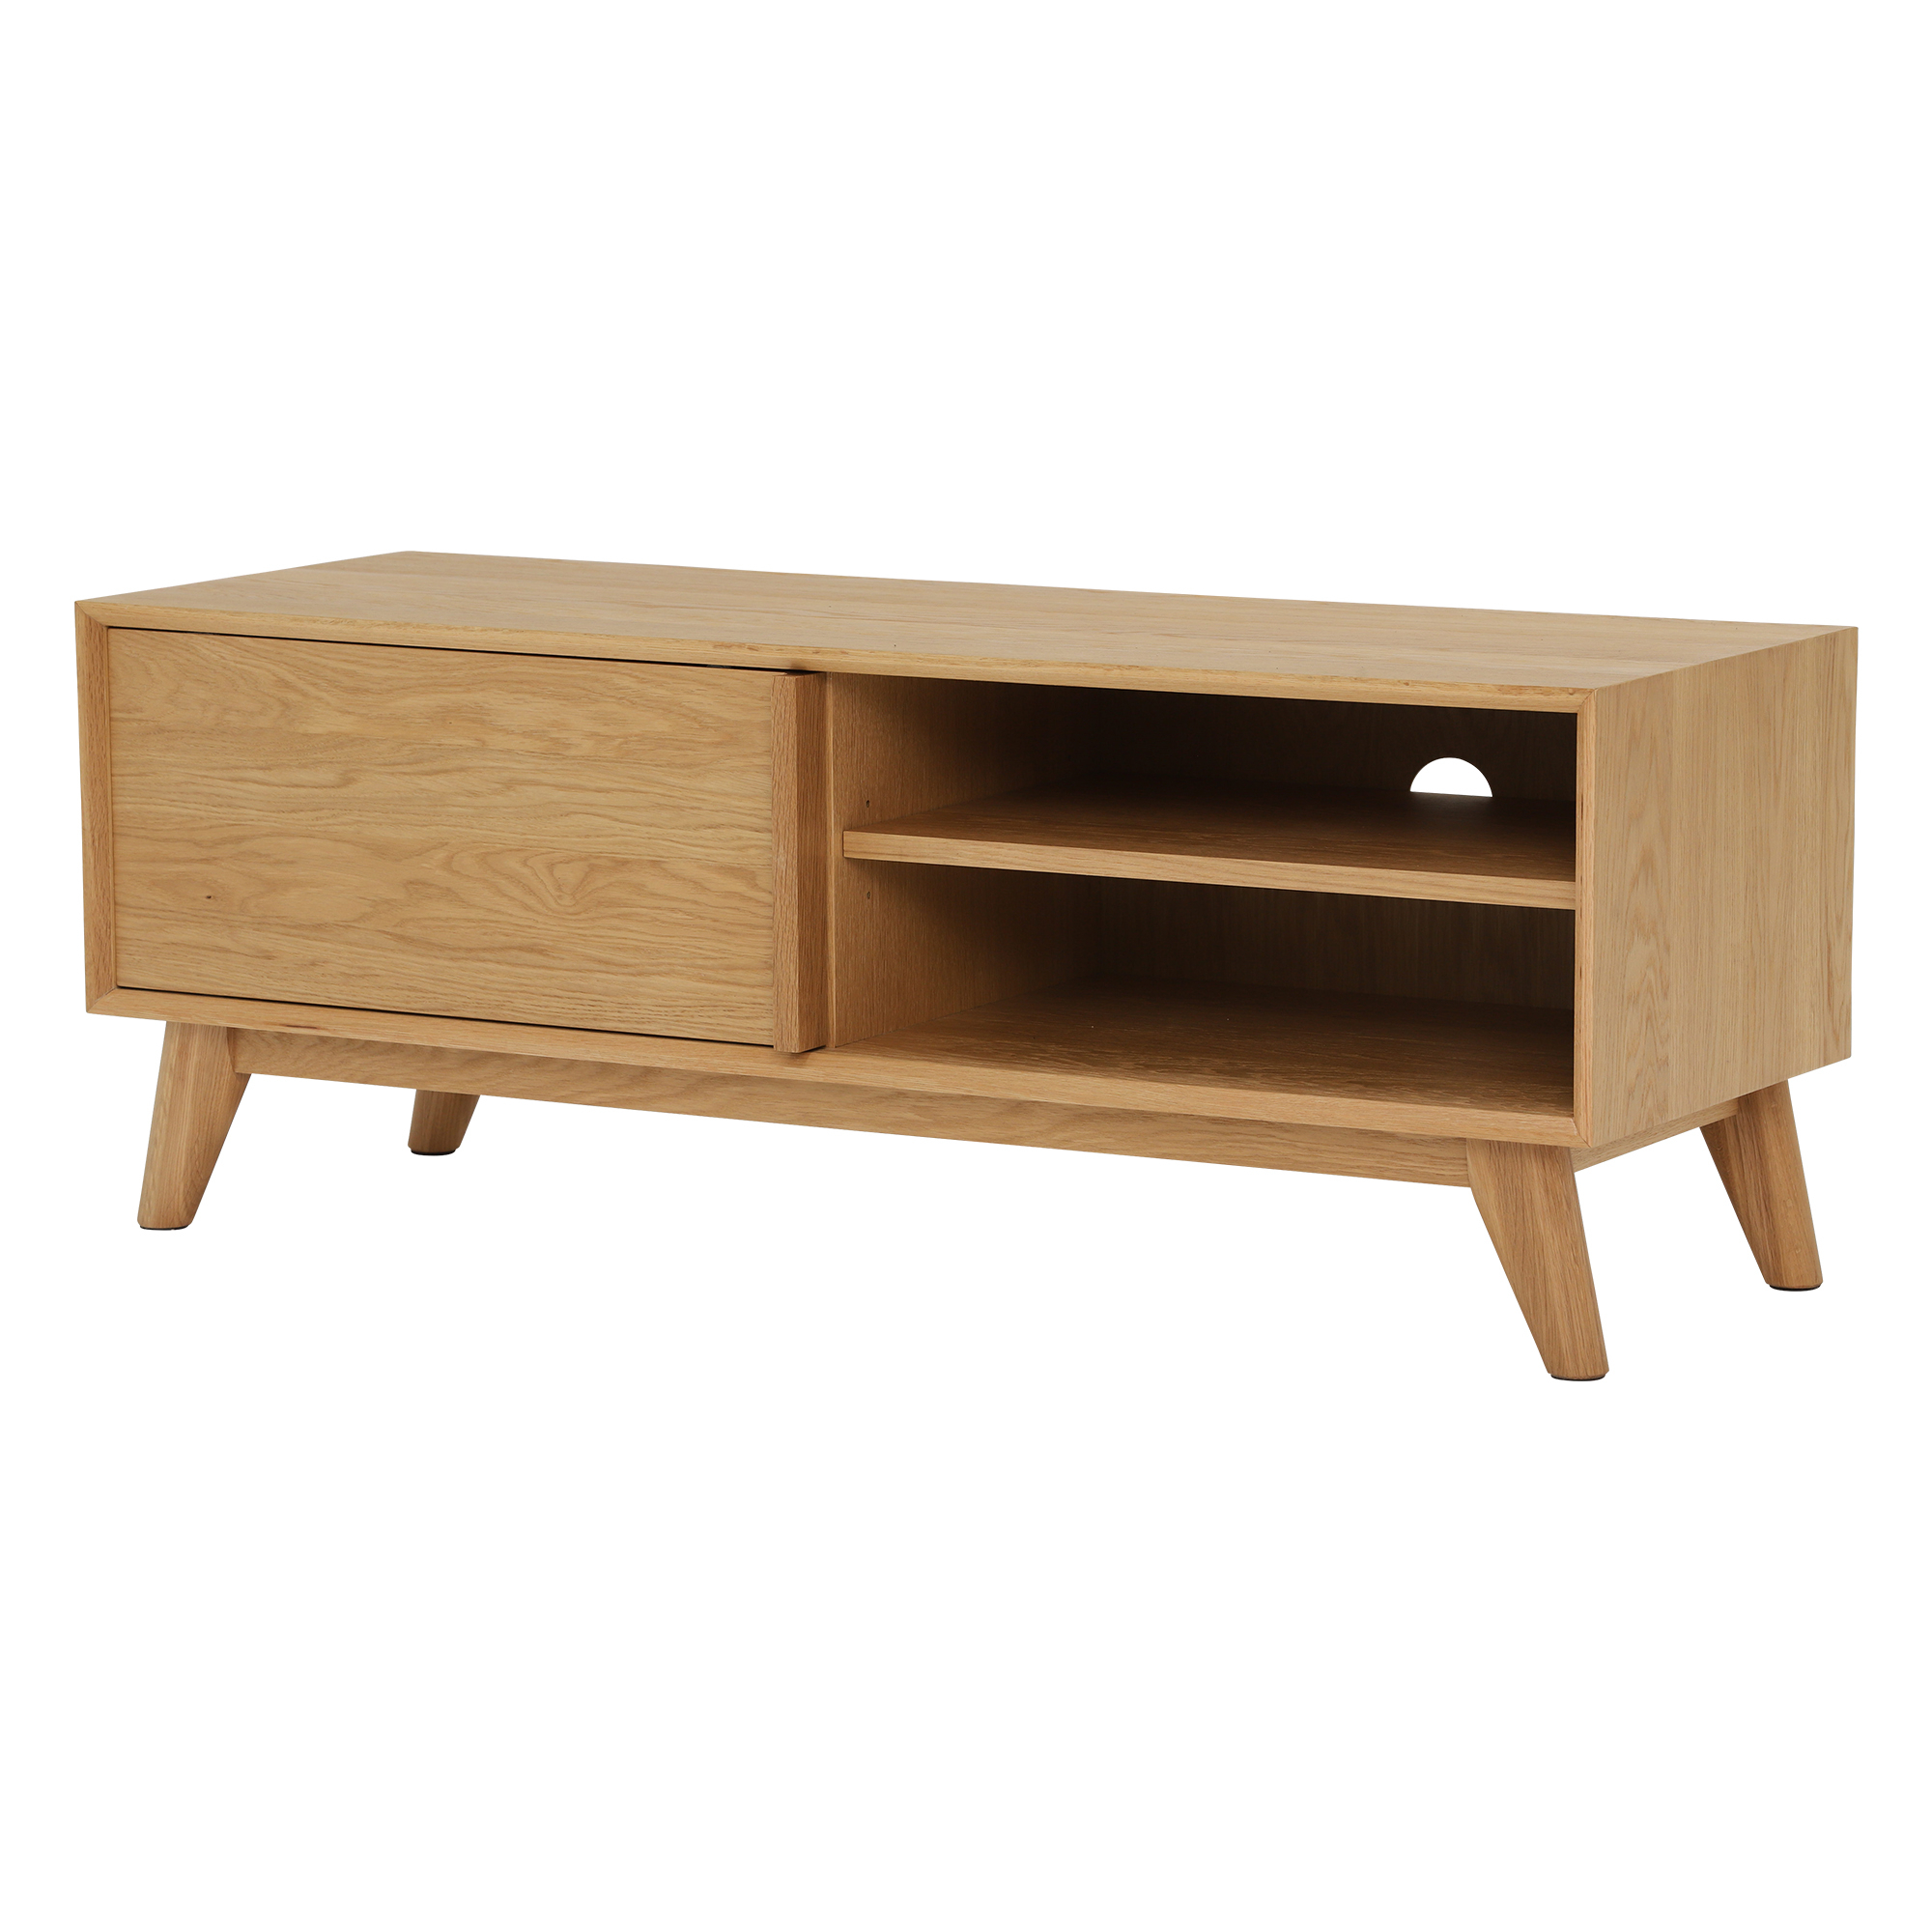 Well Liked Oak Tv Cabinets With Doors Pertaining To Lund 1 Door Oak Tv Cabinet (View 20 of 20)